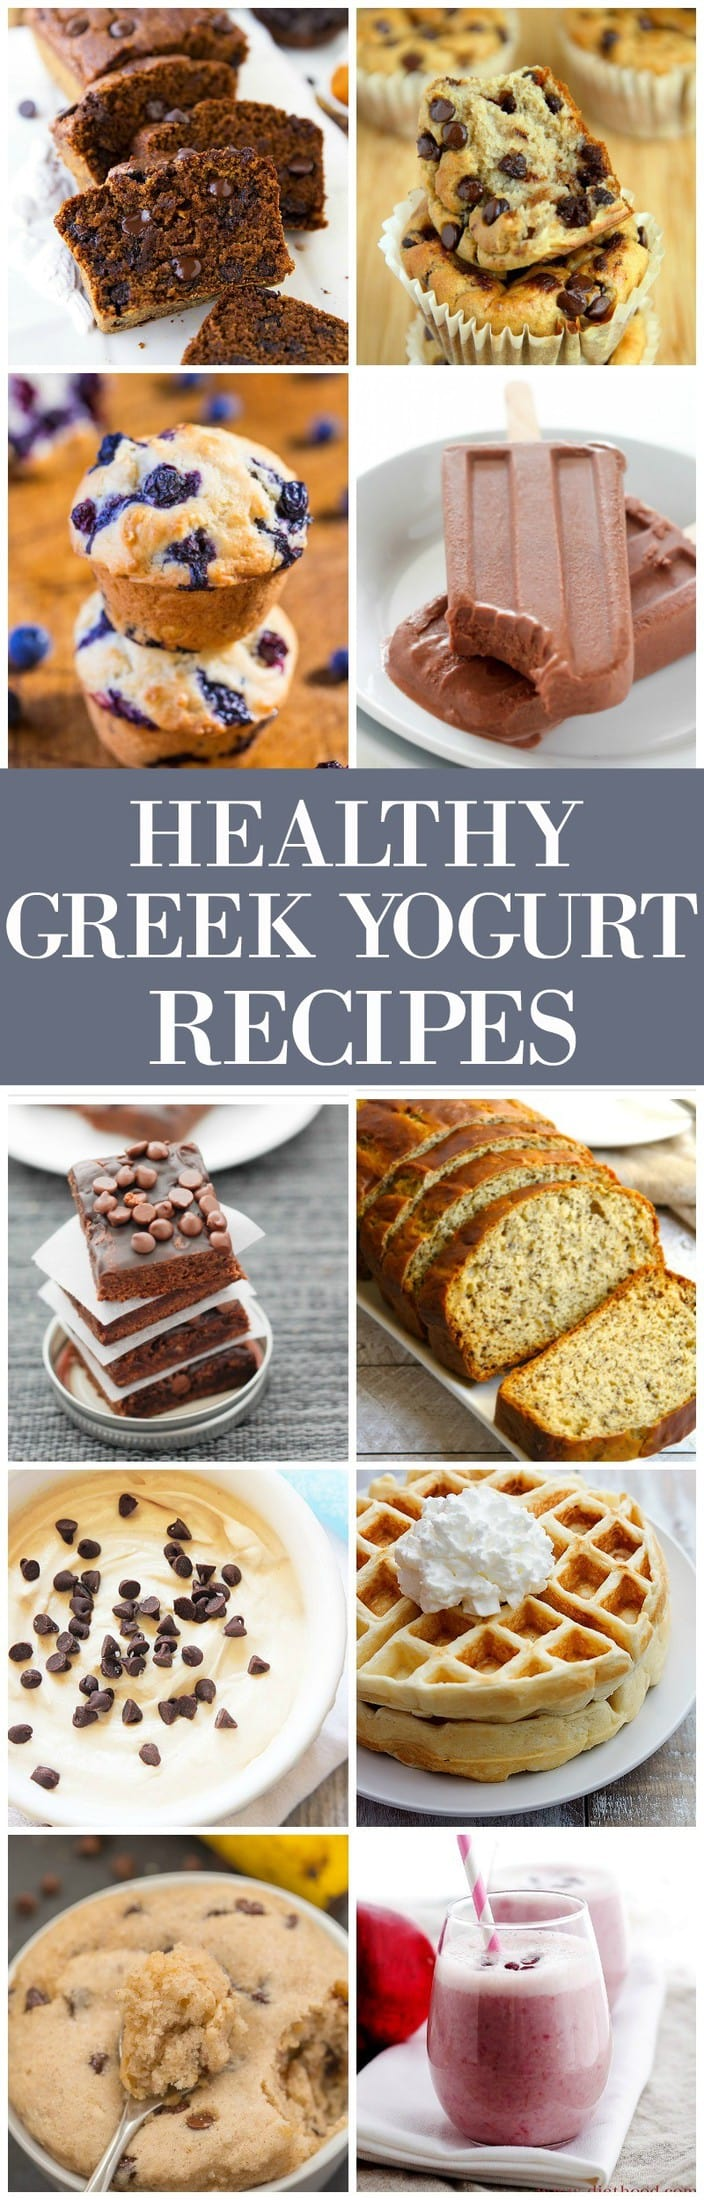 The Ultimate Healthy Greek Yogurt Recipes- You won't believe these amazing recipes contain Greek yogurt and are ridiculously healthy too! - thebigmansworld.com